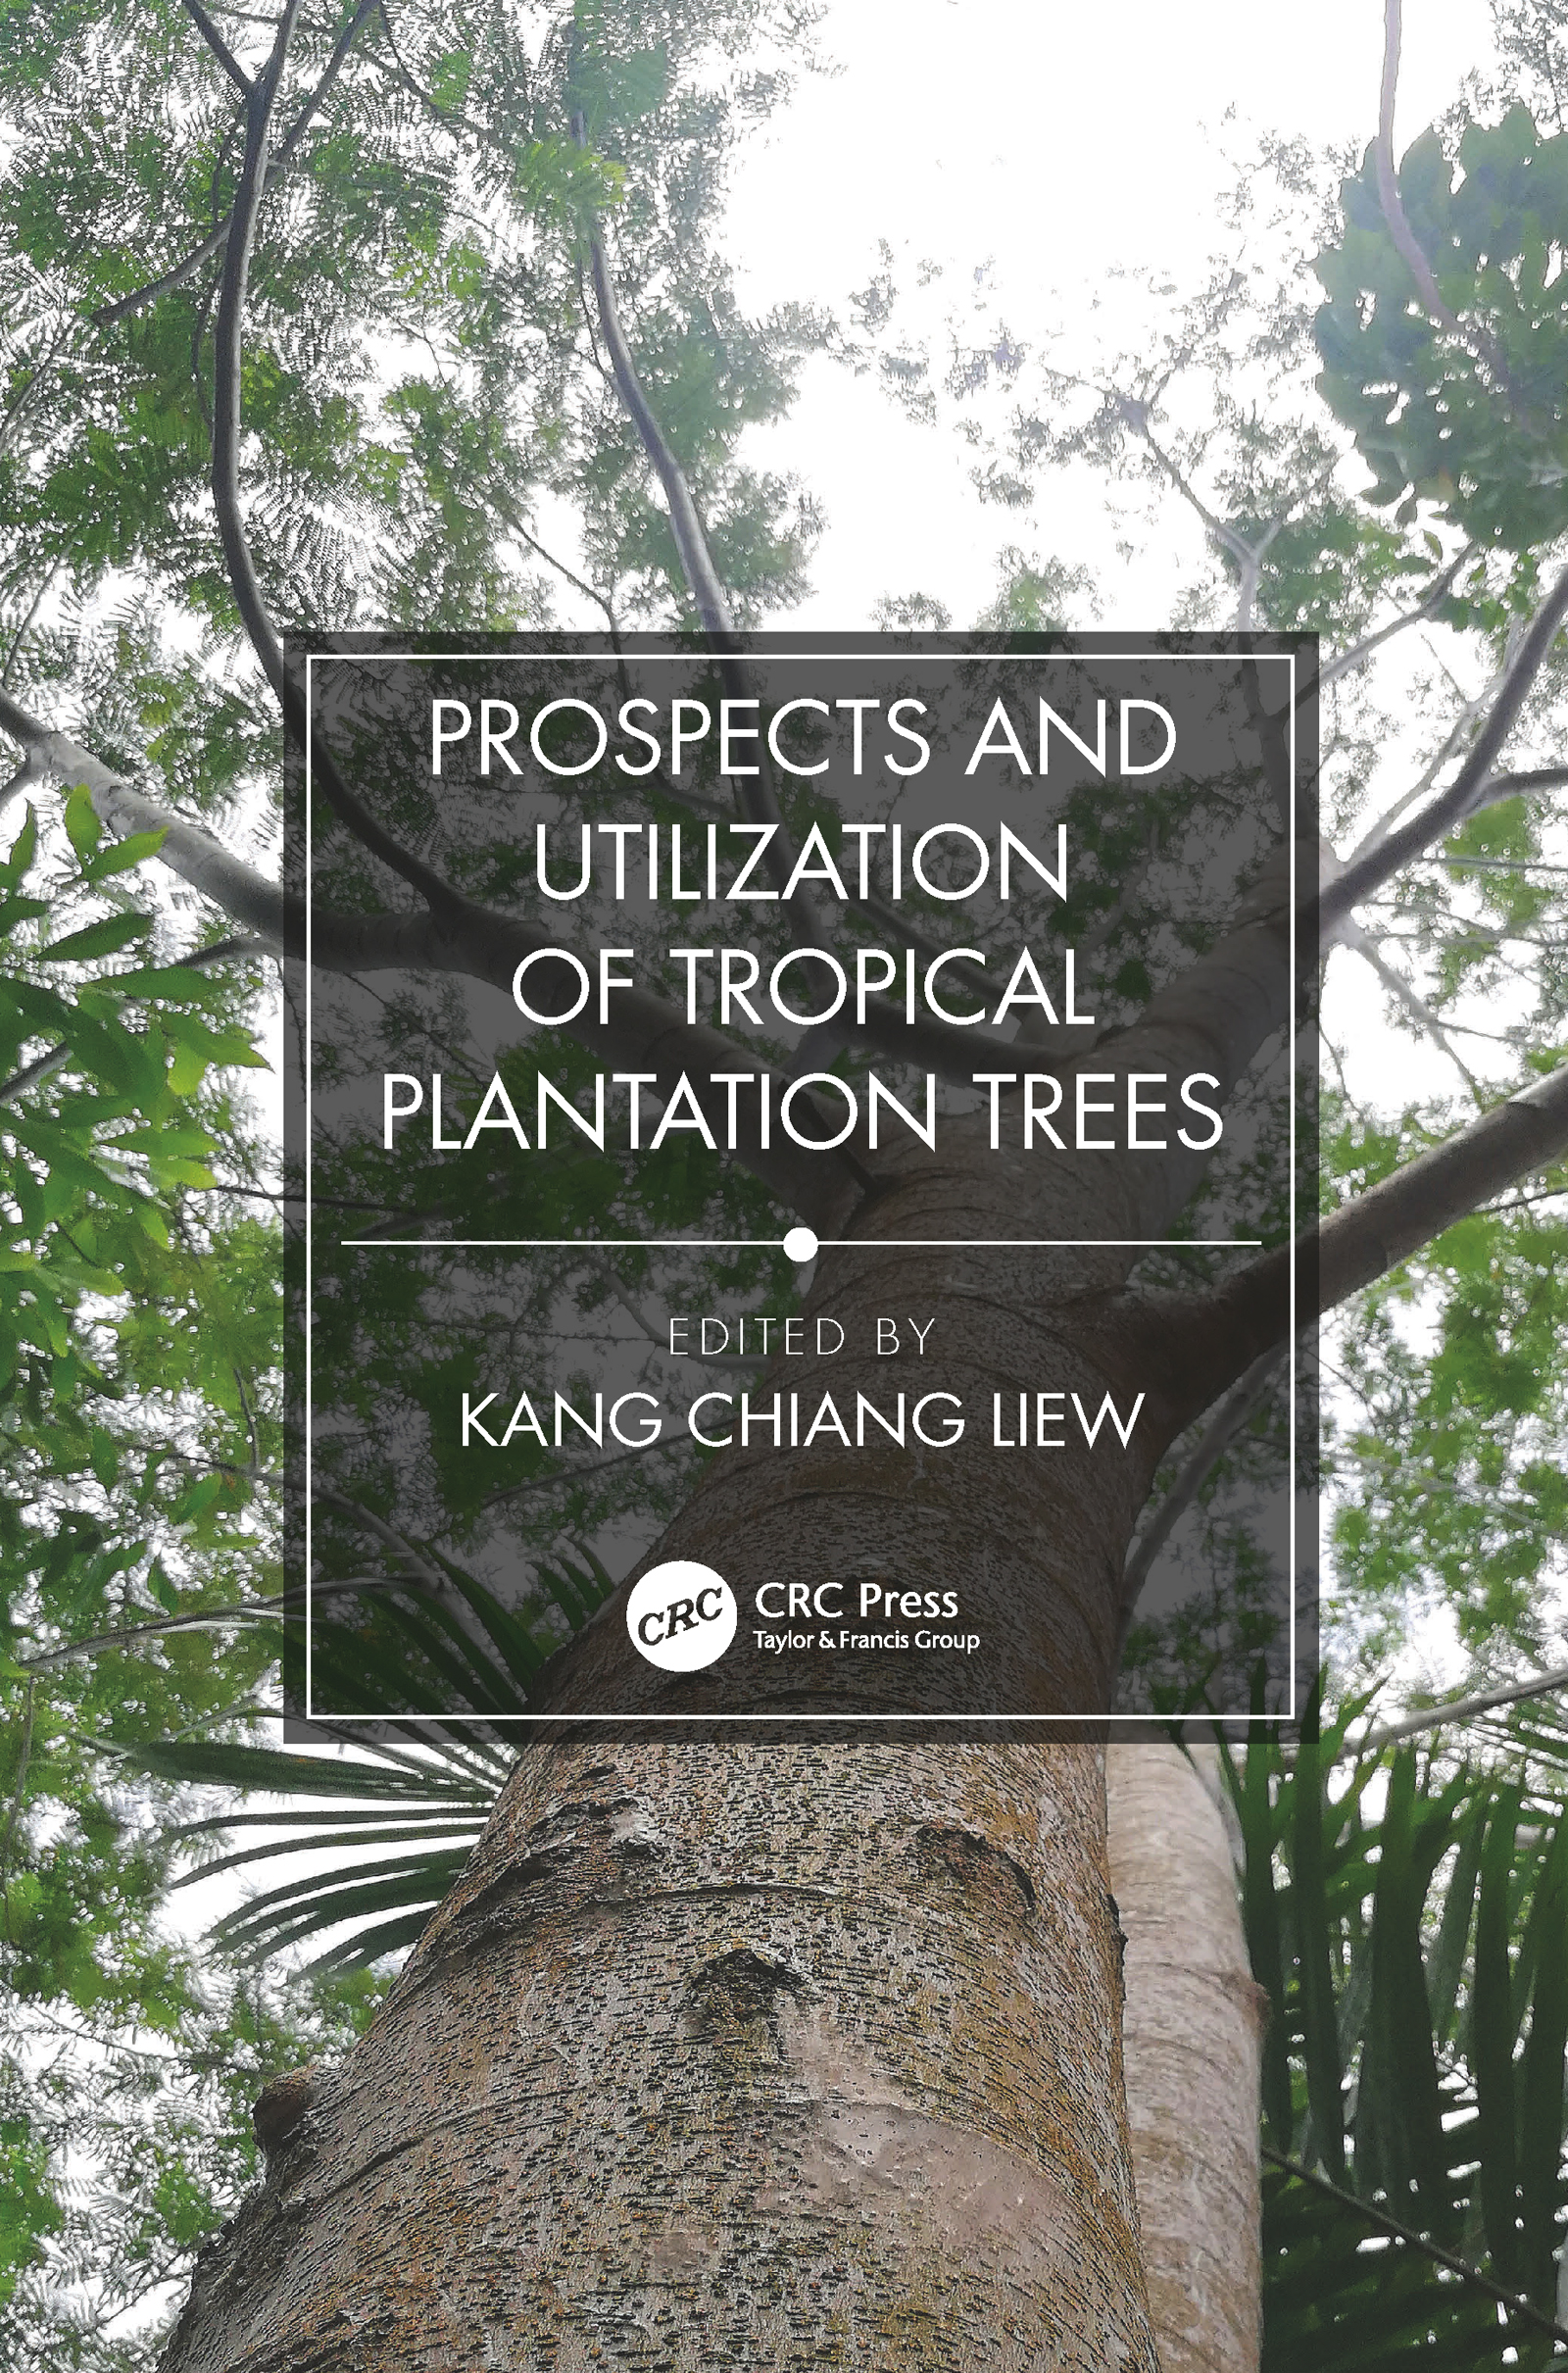 Prospects and Utilization of Tropical Plantation Trees